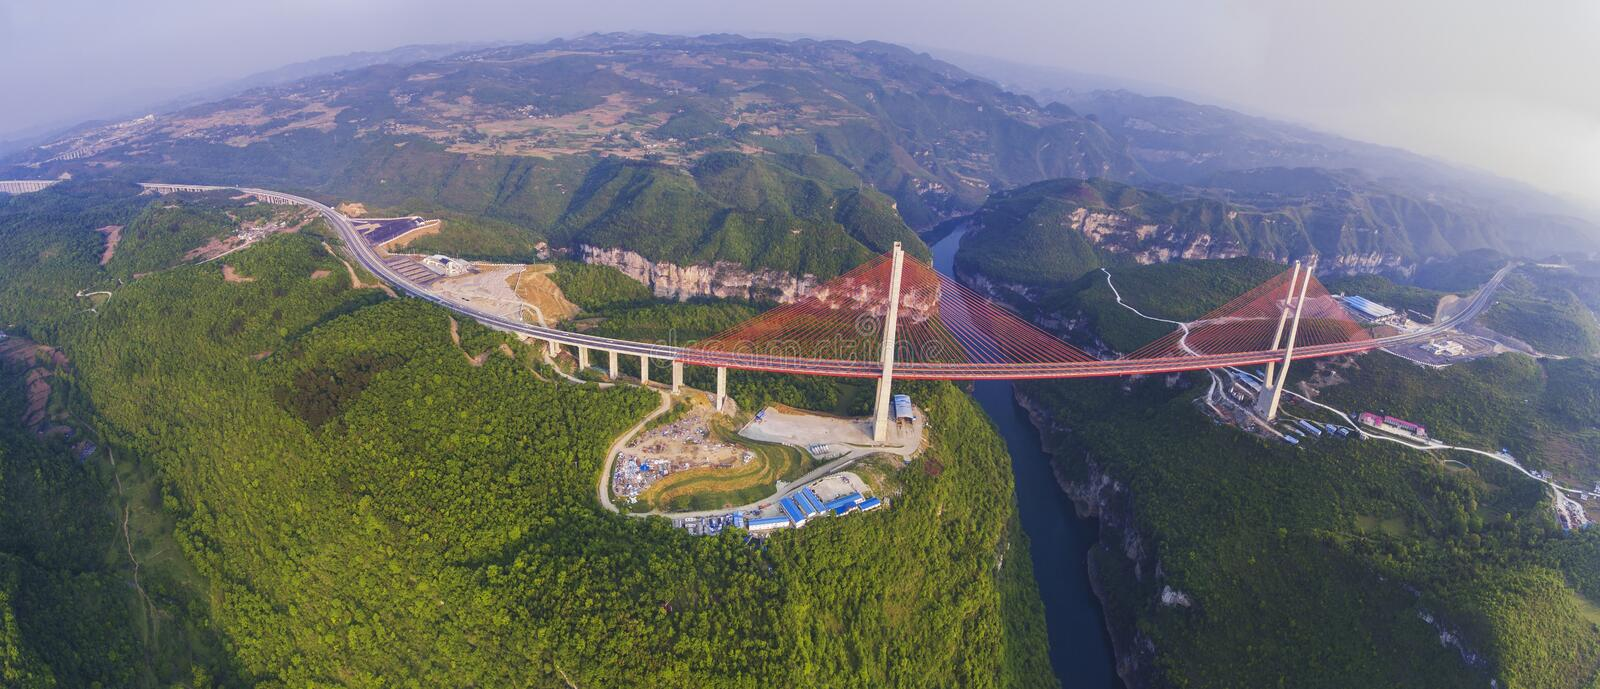 Bridge Liuguang of Guizhou. The bridge is located in Liuguang river of Guizhou province,China.the bridge is high 375 meters from the river surface, span of 580 stock images